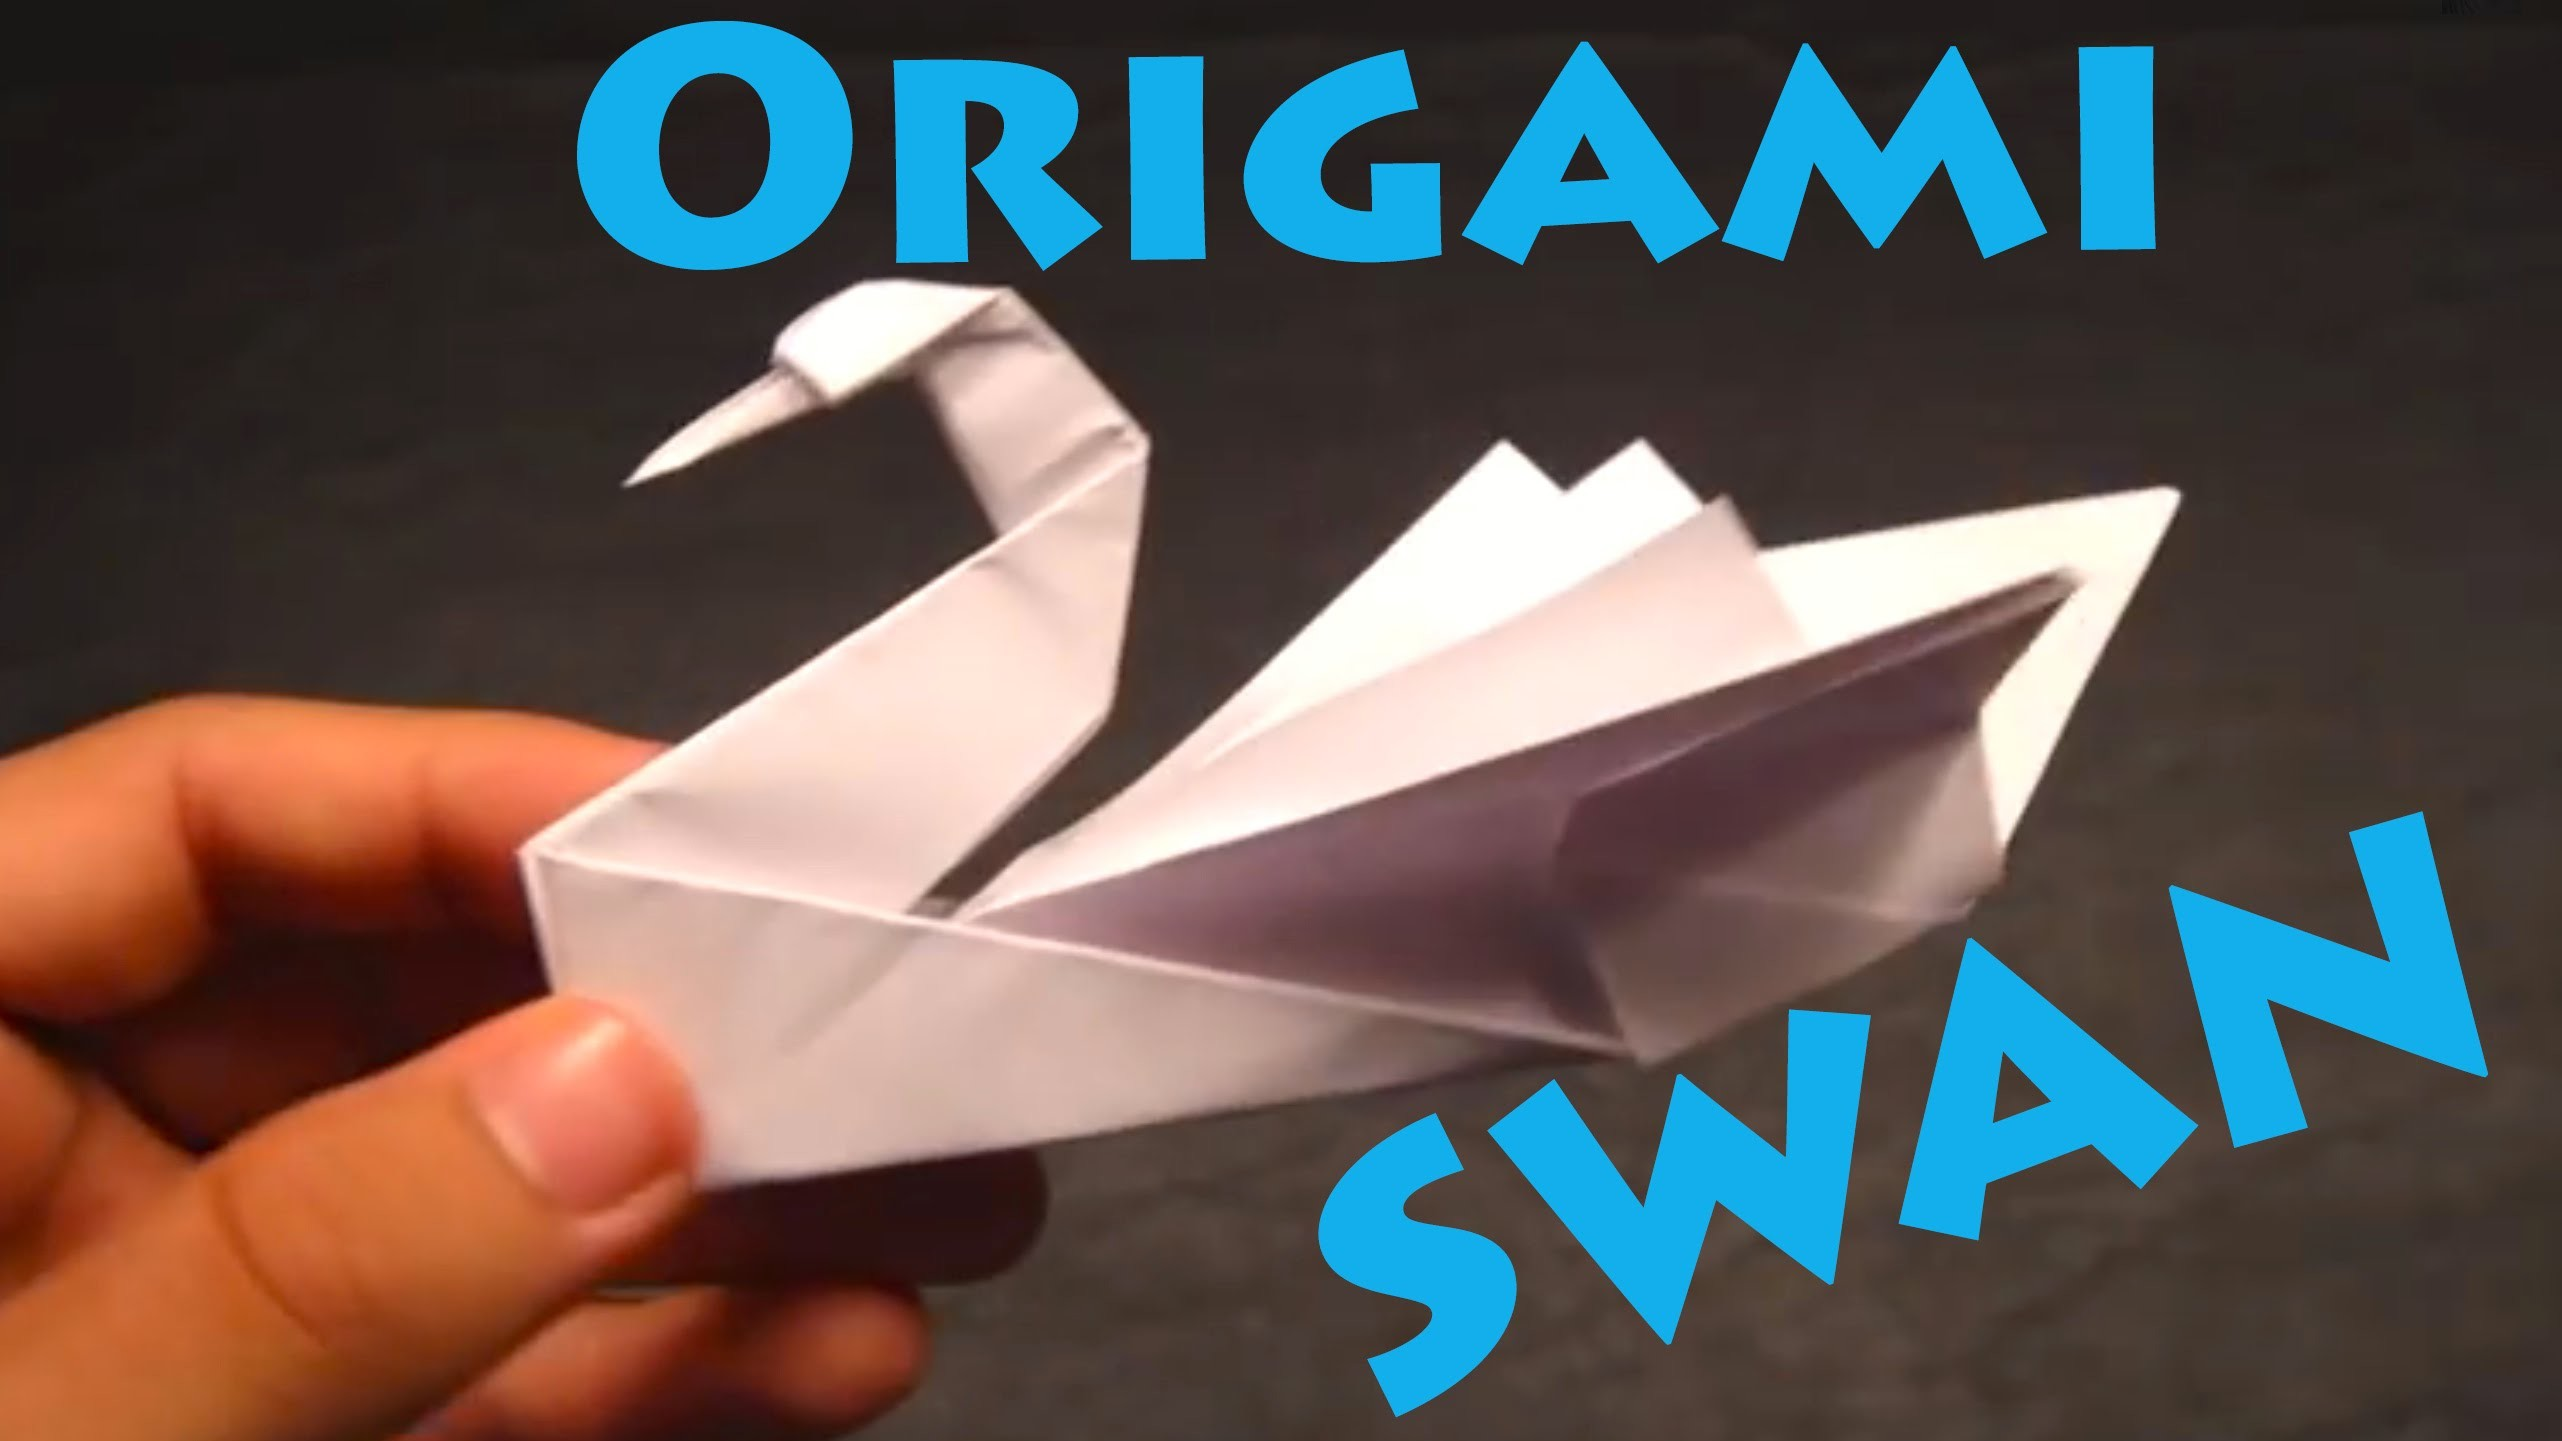 How to Make an Origami Swan (Intermediate)